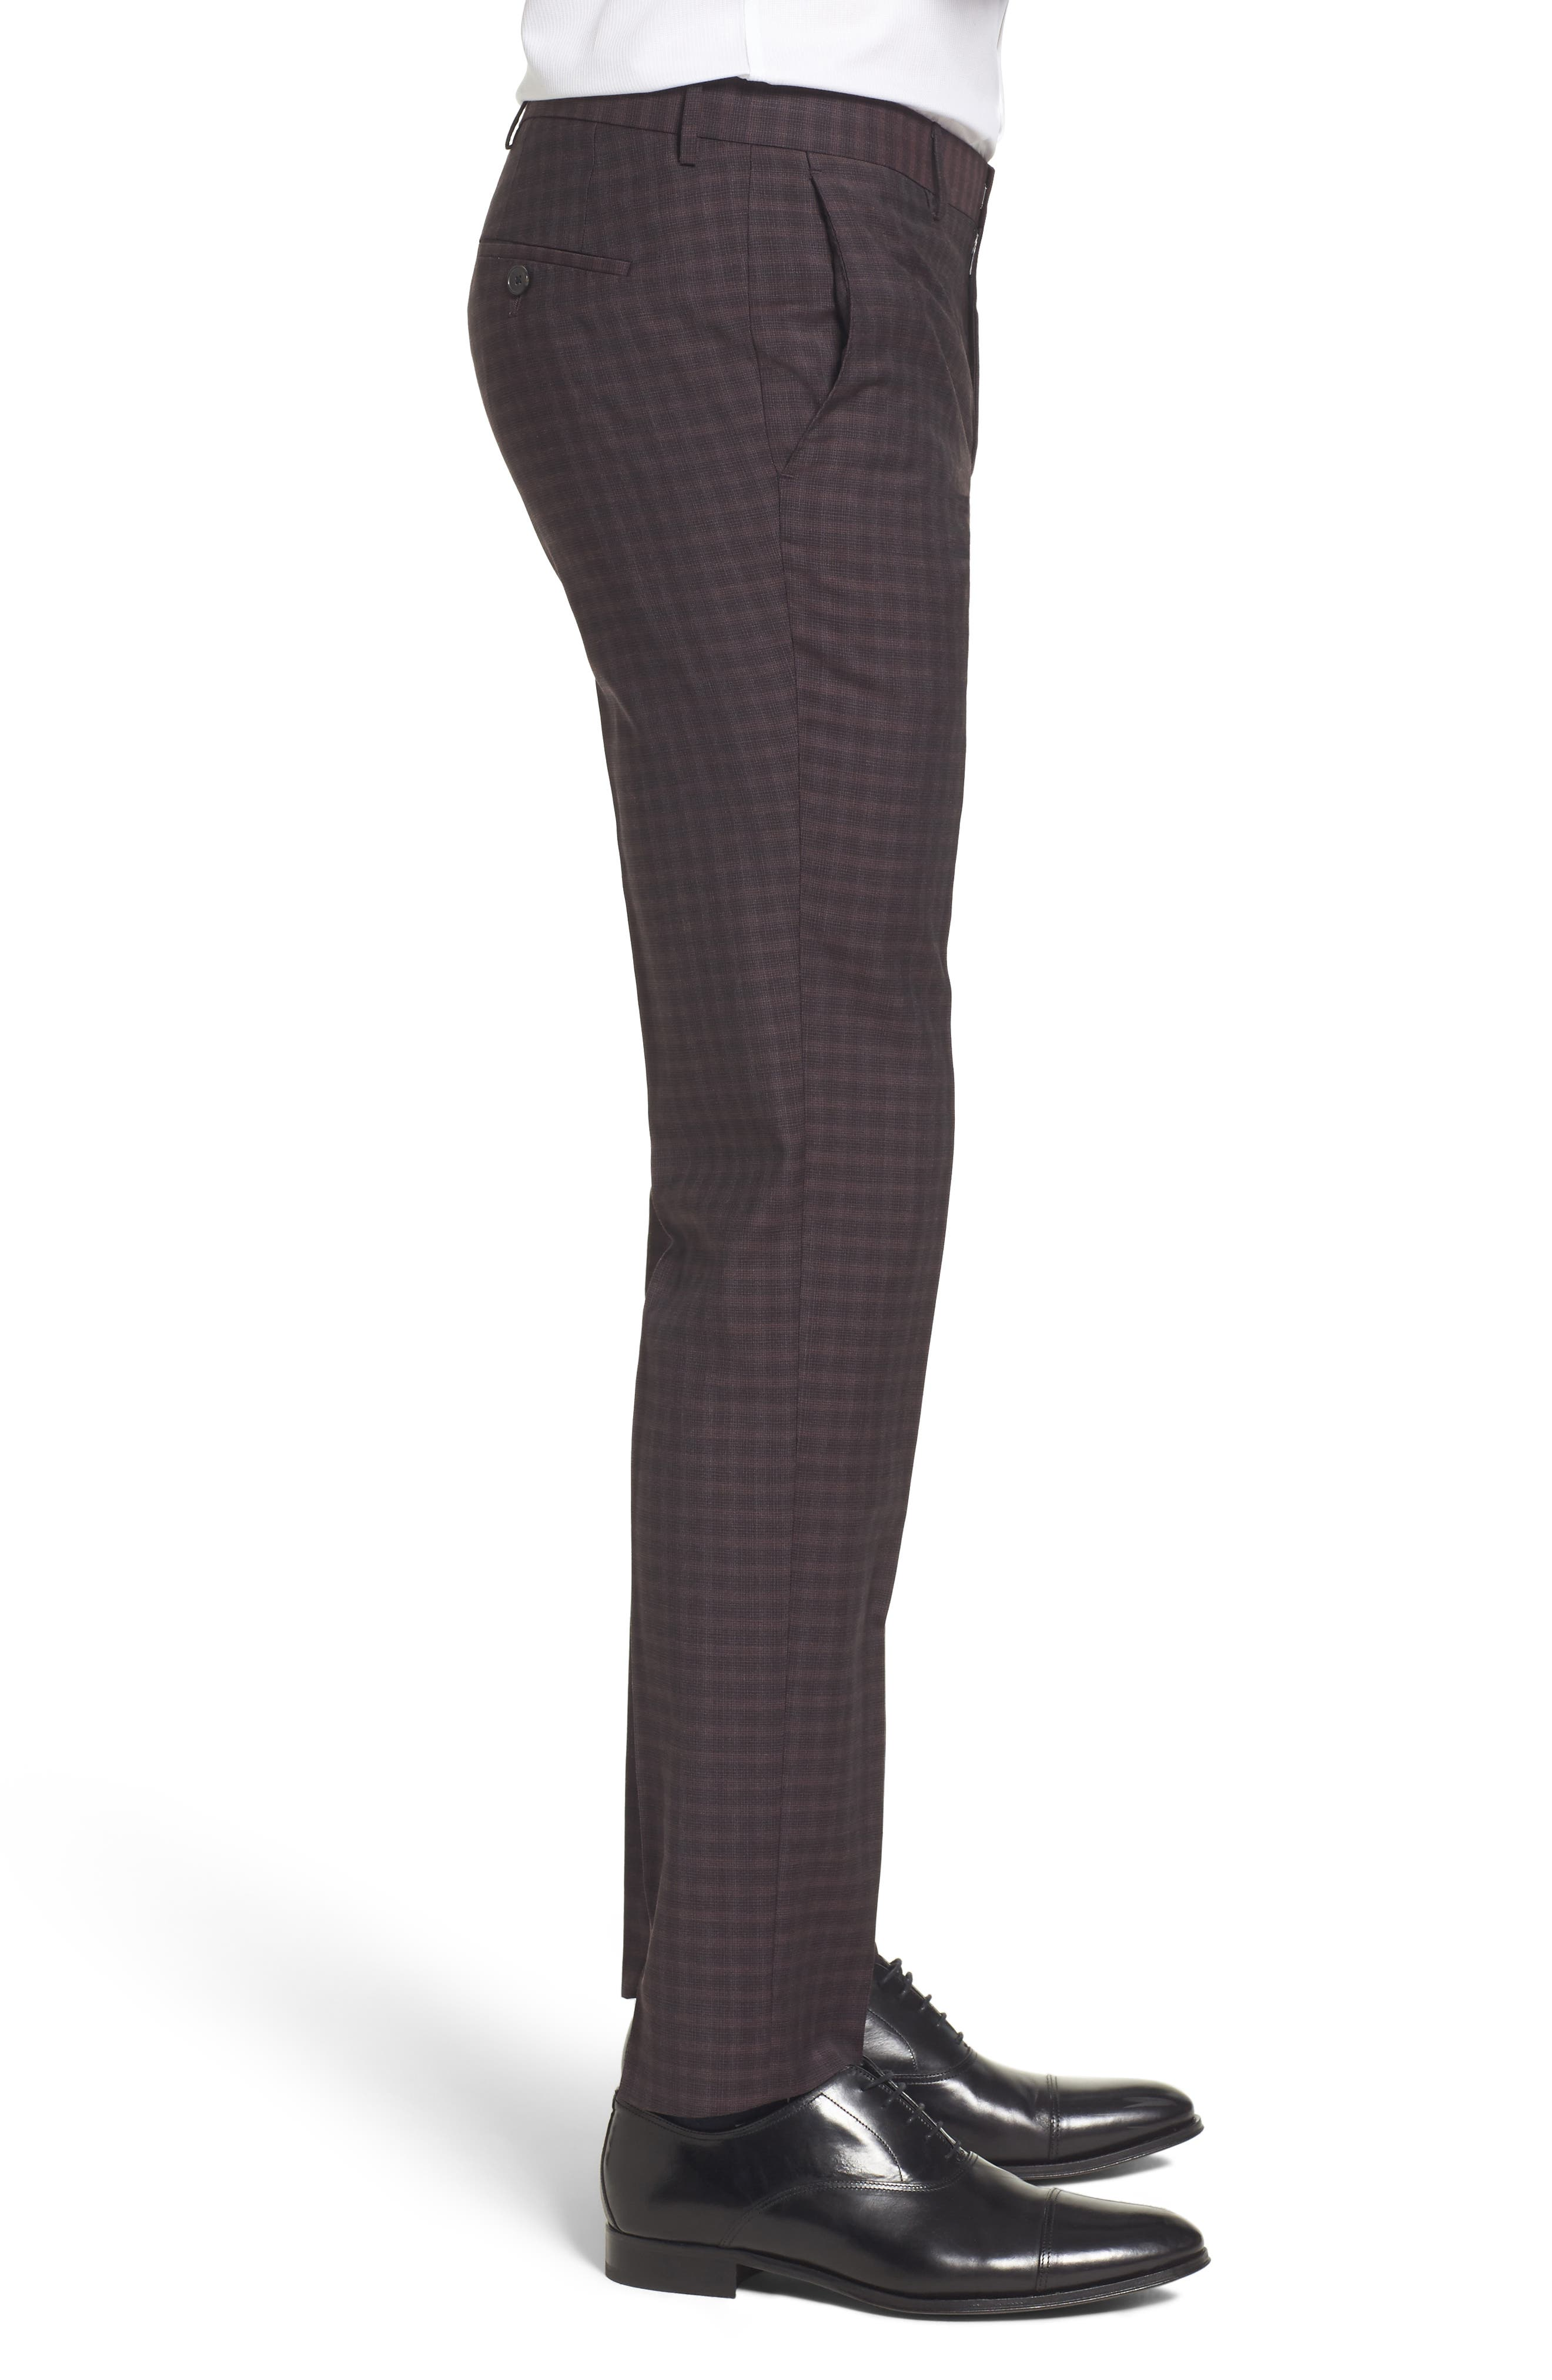 Benso Regular Fit Wool Trousers,                             Alternate thumbnail 4, color,                             606